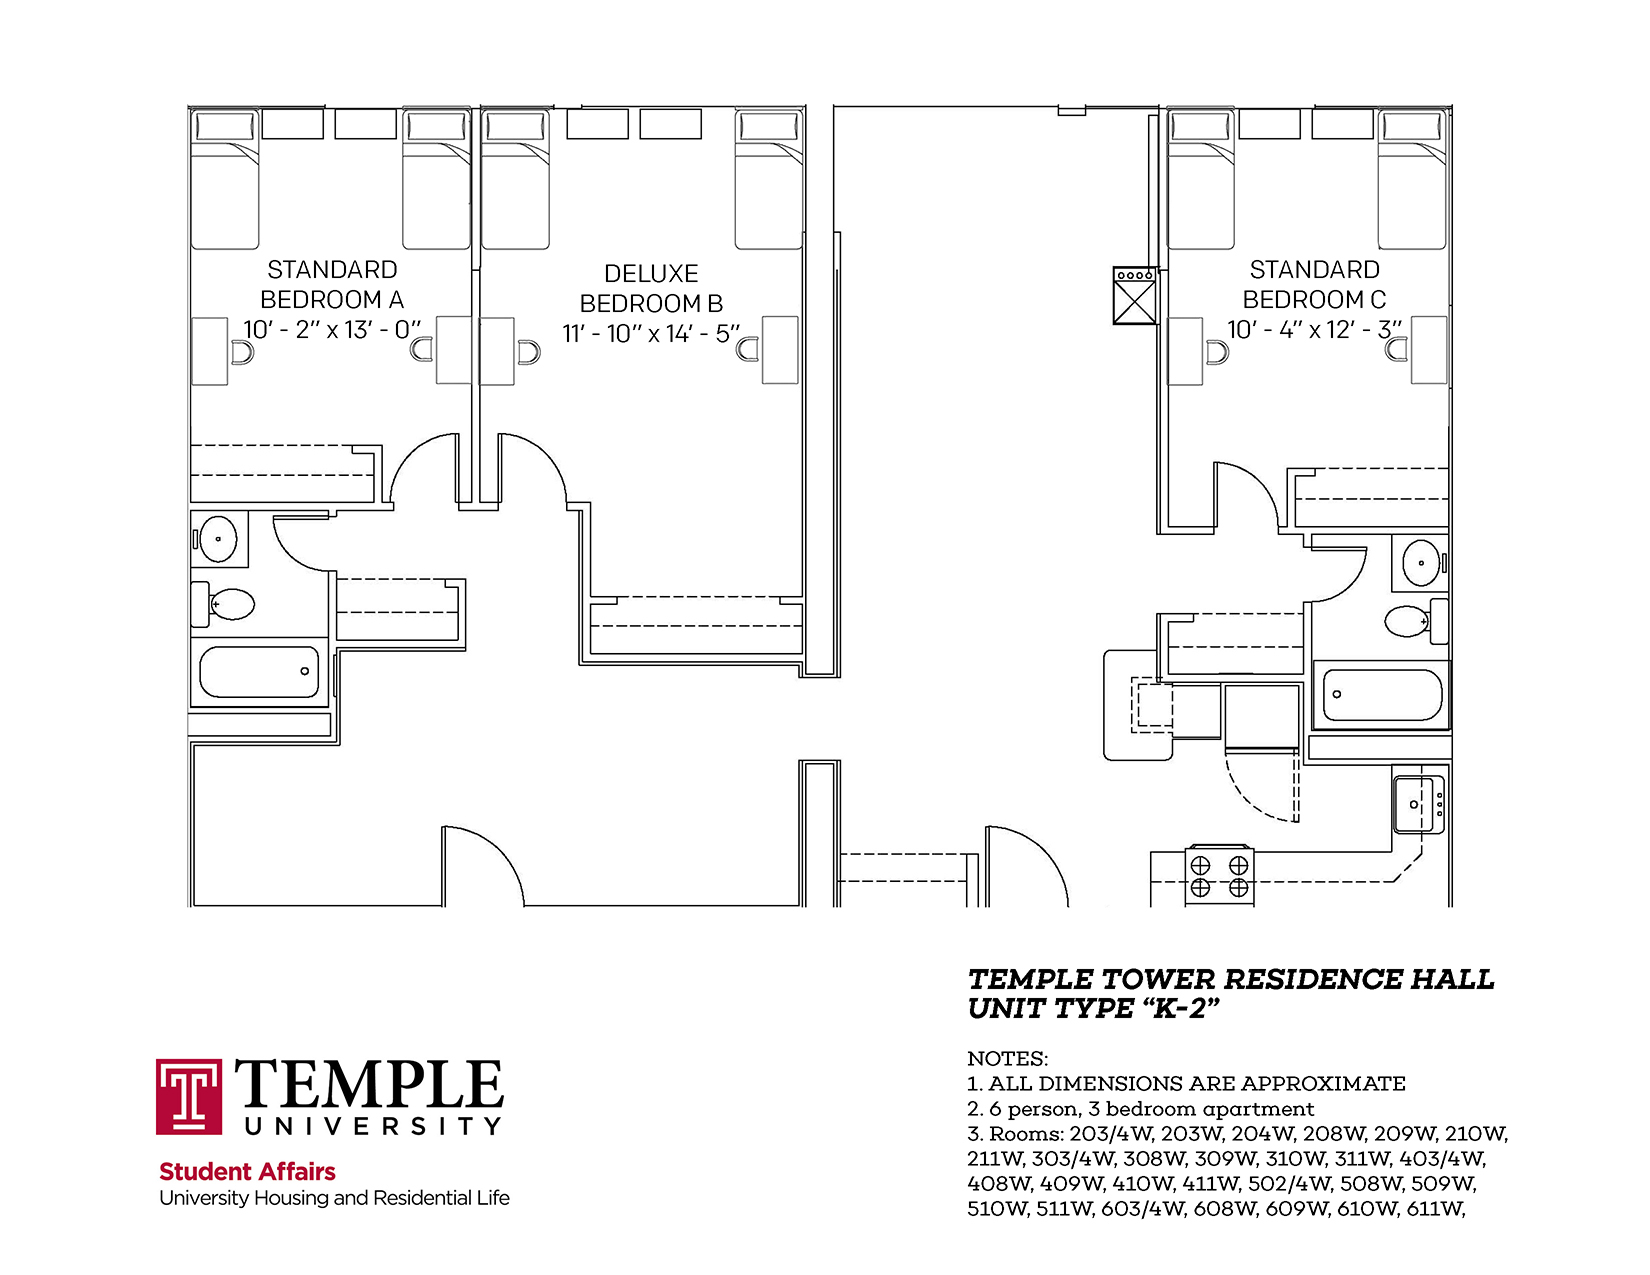 Temple Towers: Unit K2 - 6 person, 3 bedroom Apartment